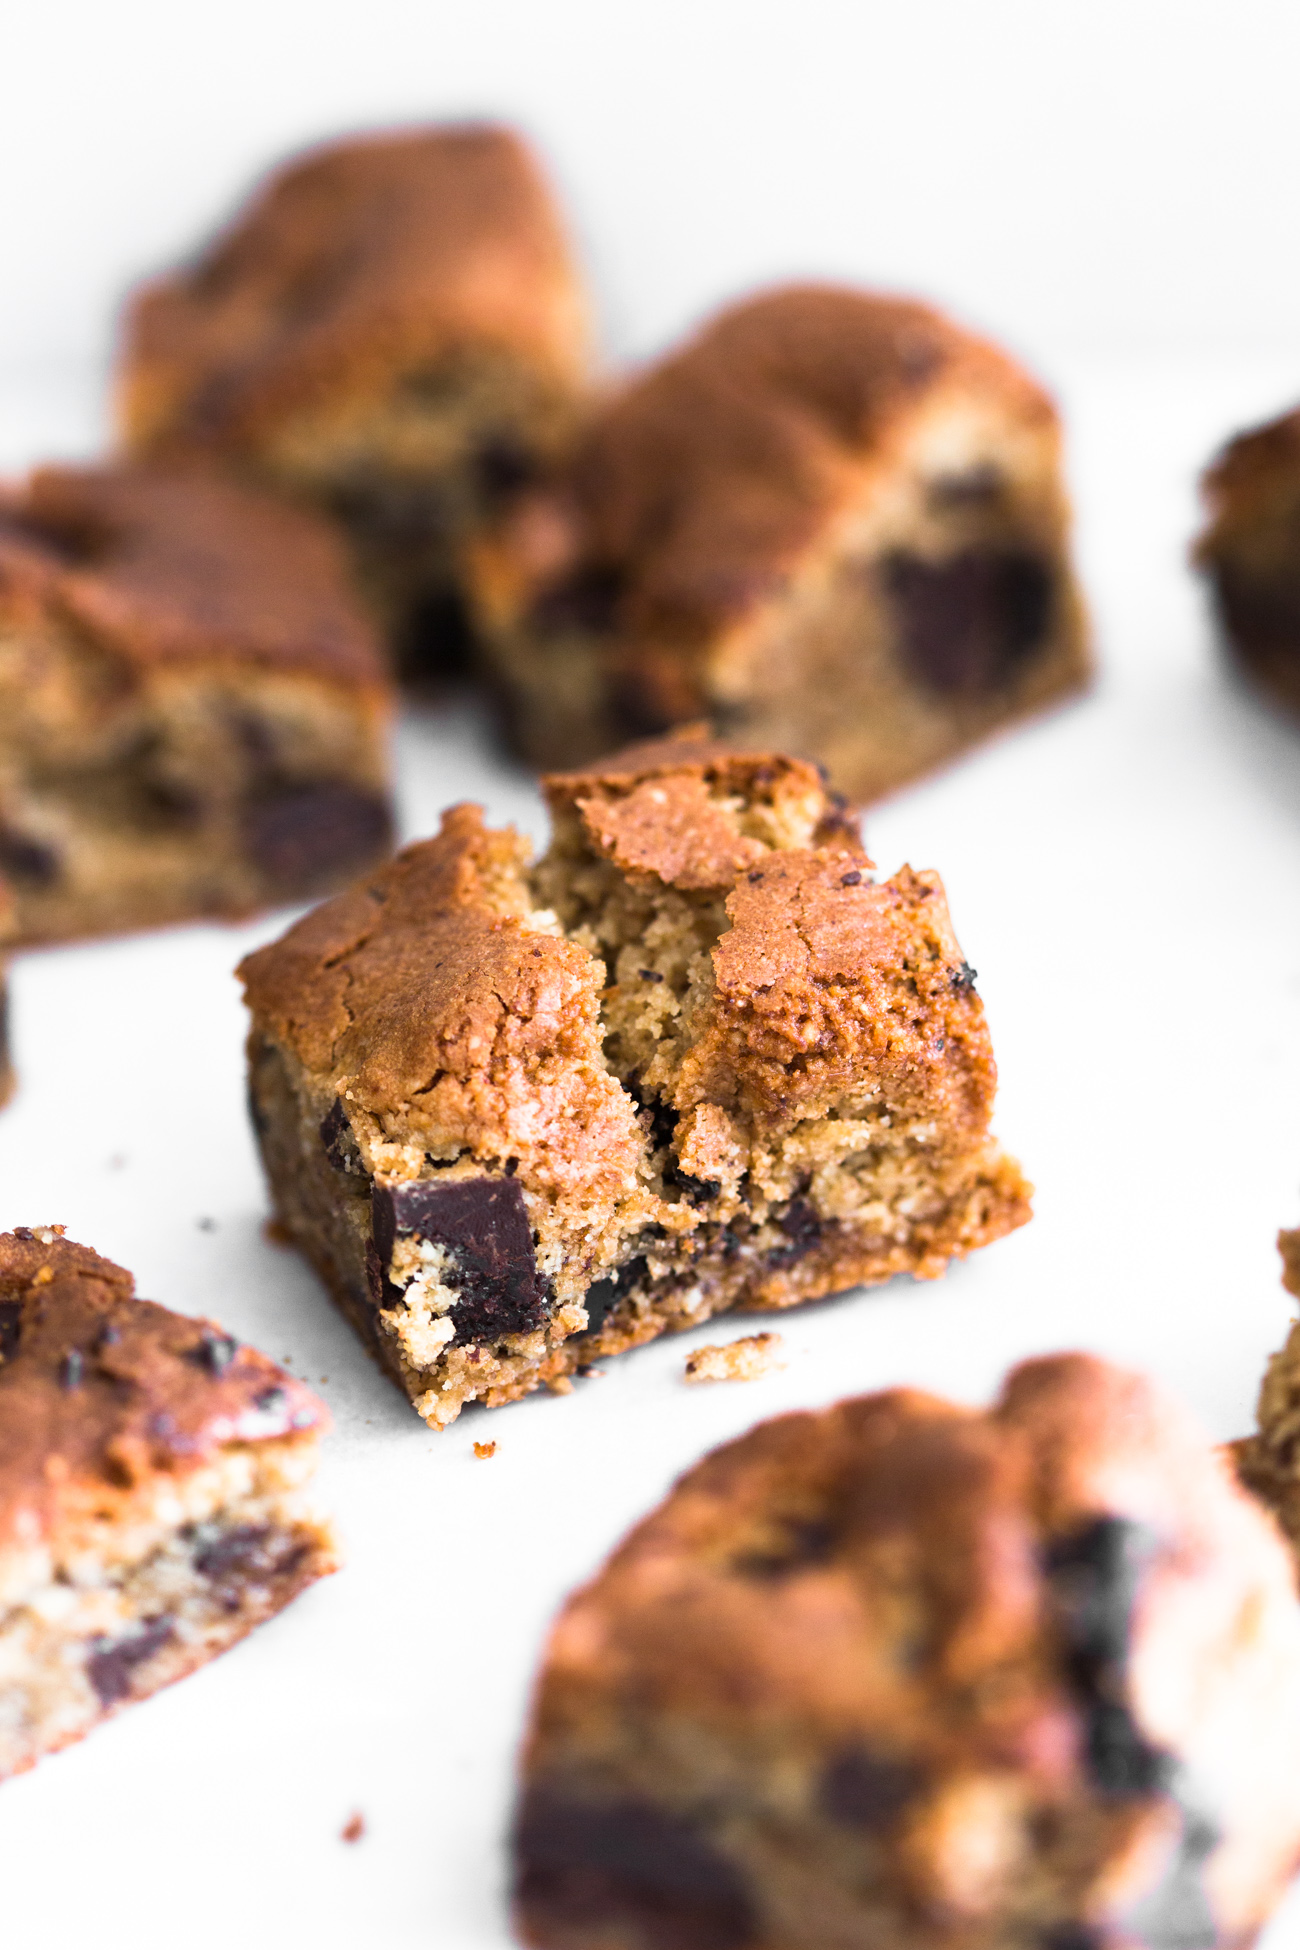 Sweet meets salty in these Vegan Miso Chocolate Chip Cookie Bars. Don't knock it till you try it! Ready in under an hour and 100% Gluten Free. #miso #glutenfree #chocolatechip #blondies #chocolatechunk #misochocolate #salty #baking #vegan #cookiebar #almonds #dairyfree